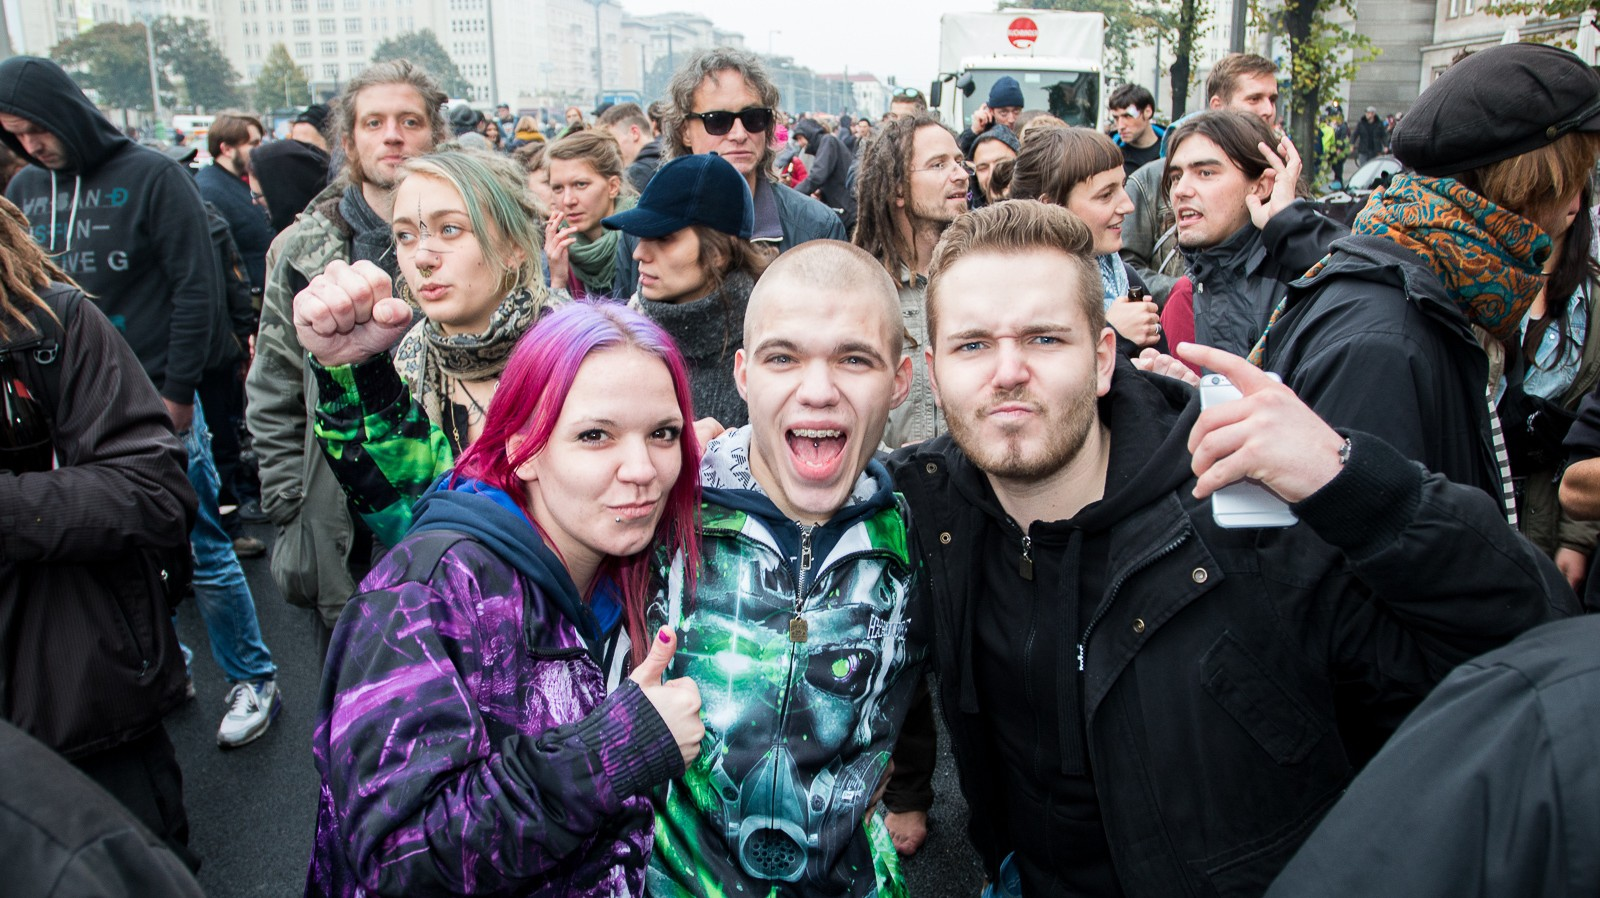 Meet the People of Fuckparade, the Street Festival in Berlin that Brought Us Techno Viking